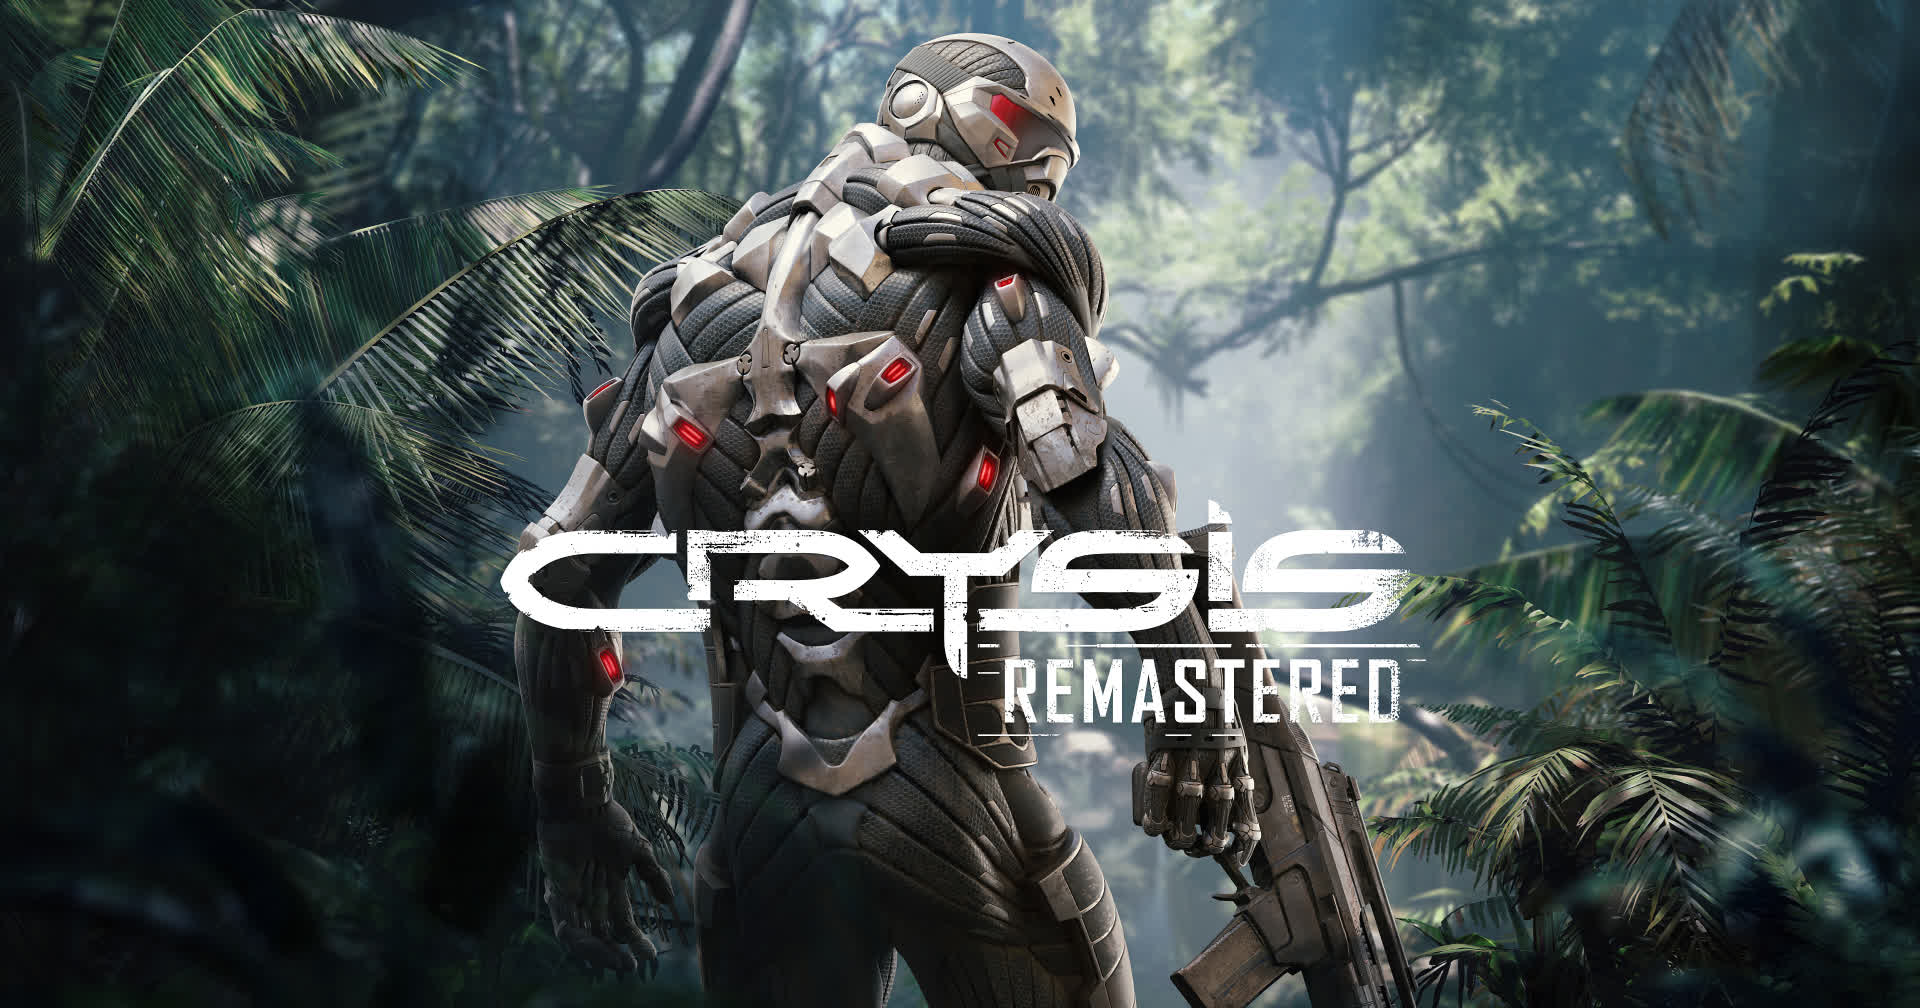 Crysis Remastered patch promises better performance on modern hardware